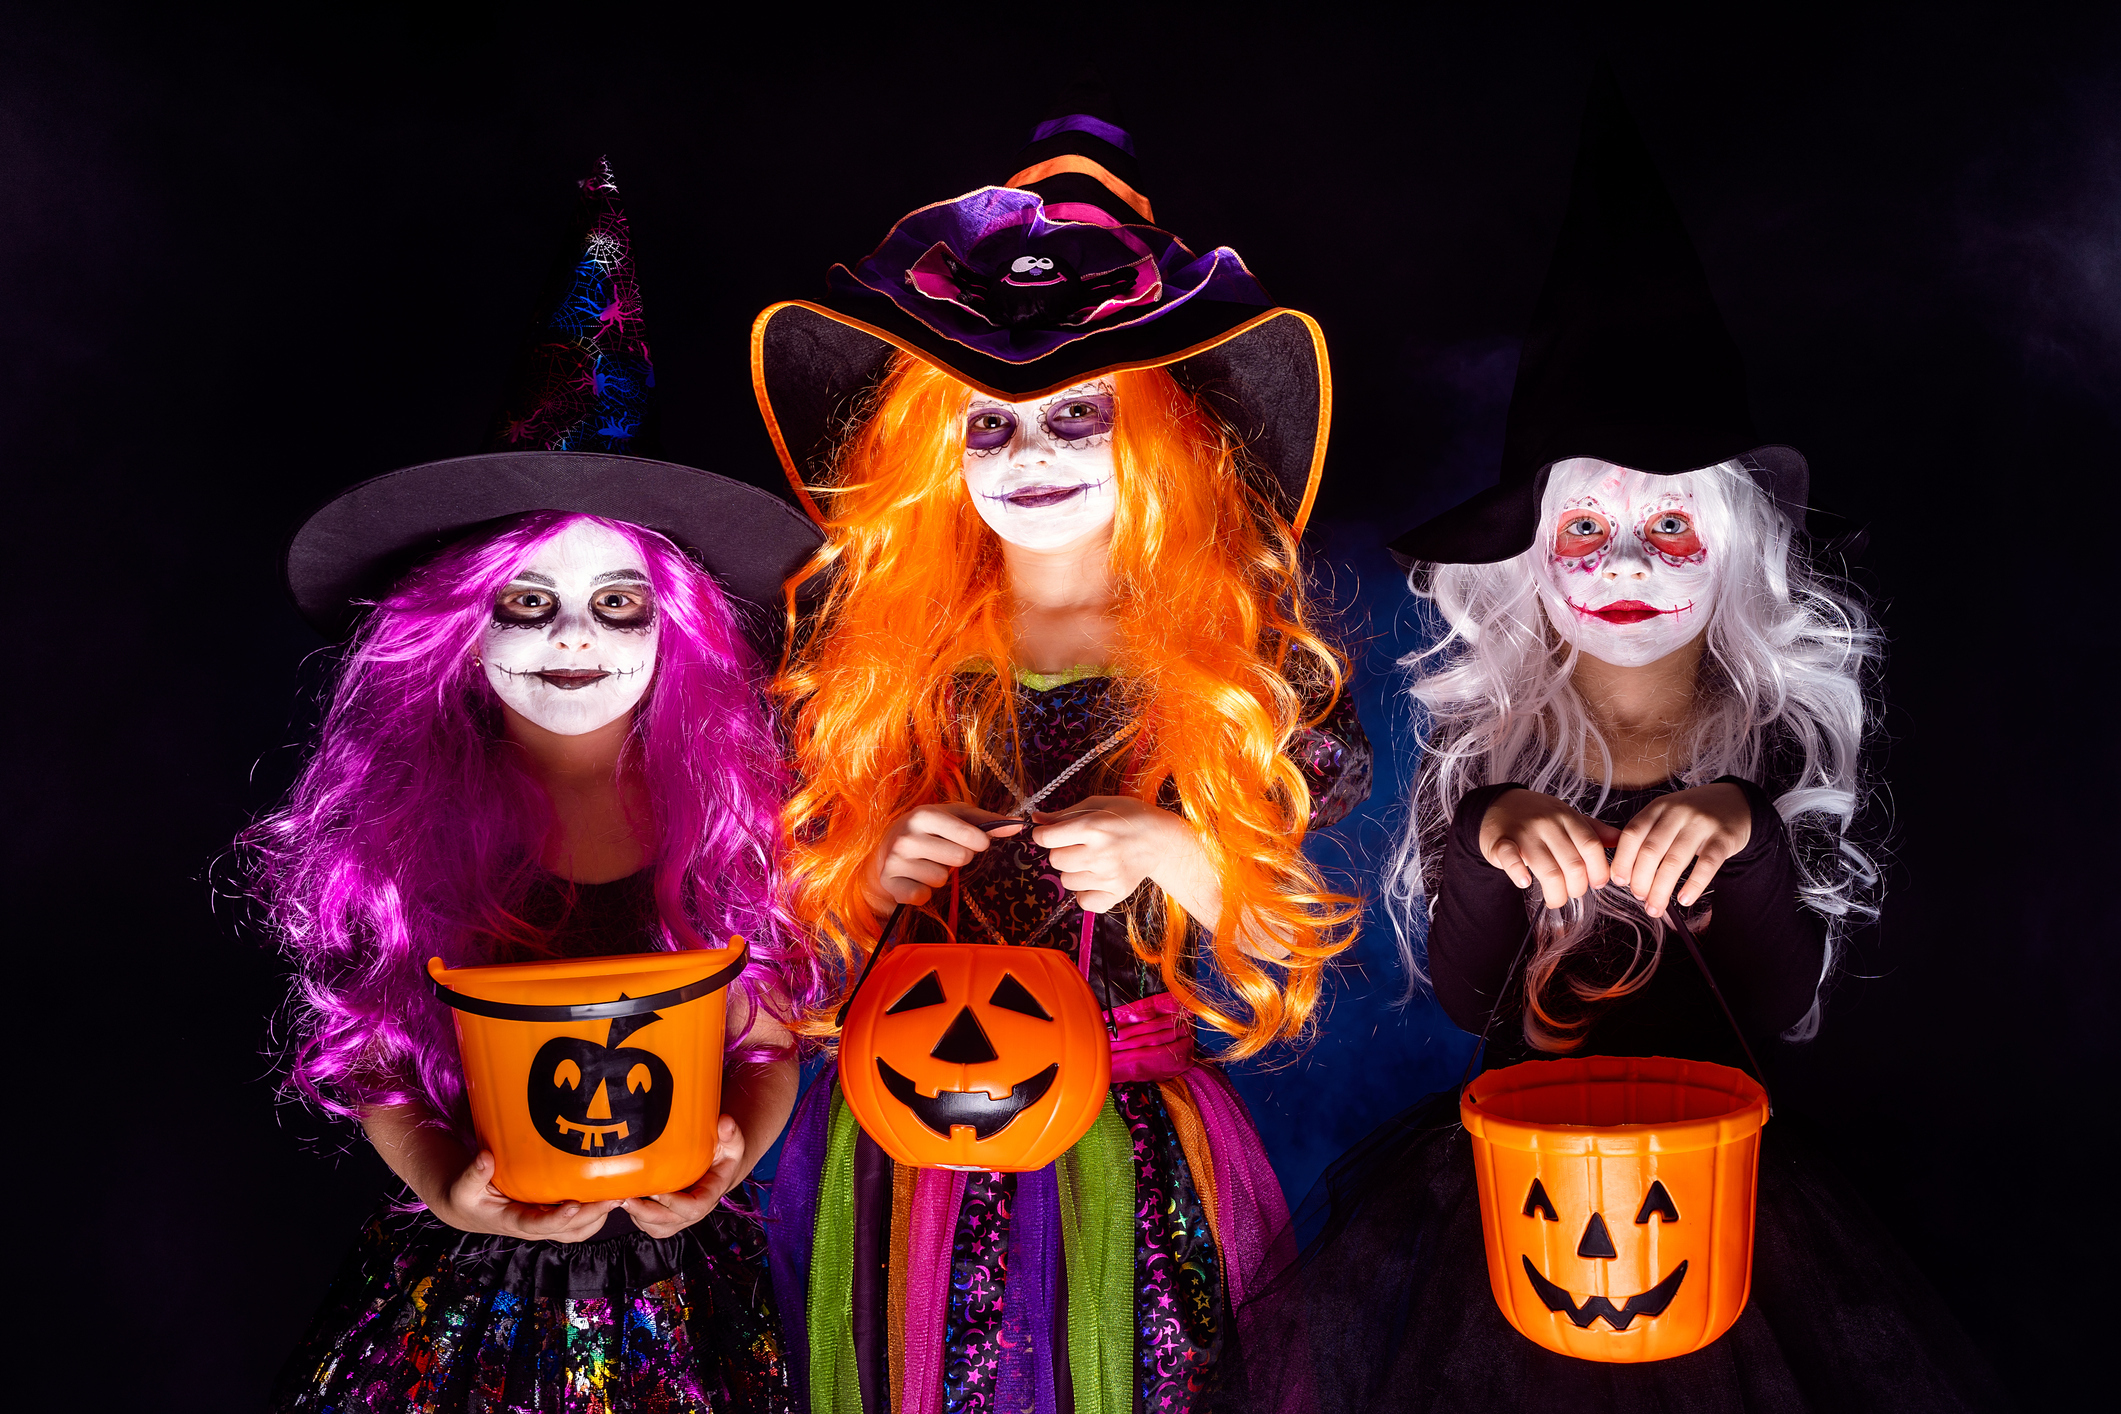 Halloween 2020 La Is Halloween Canceled For 2020? L.A. County Bans Trick or Treating